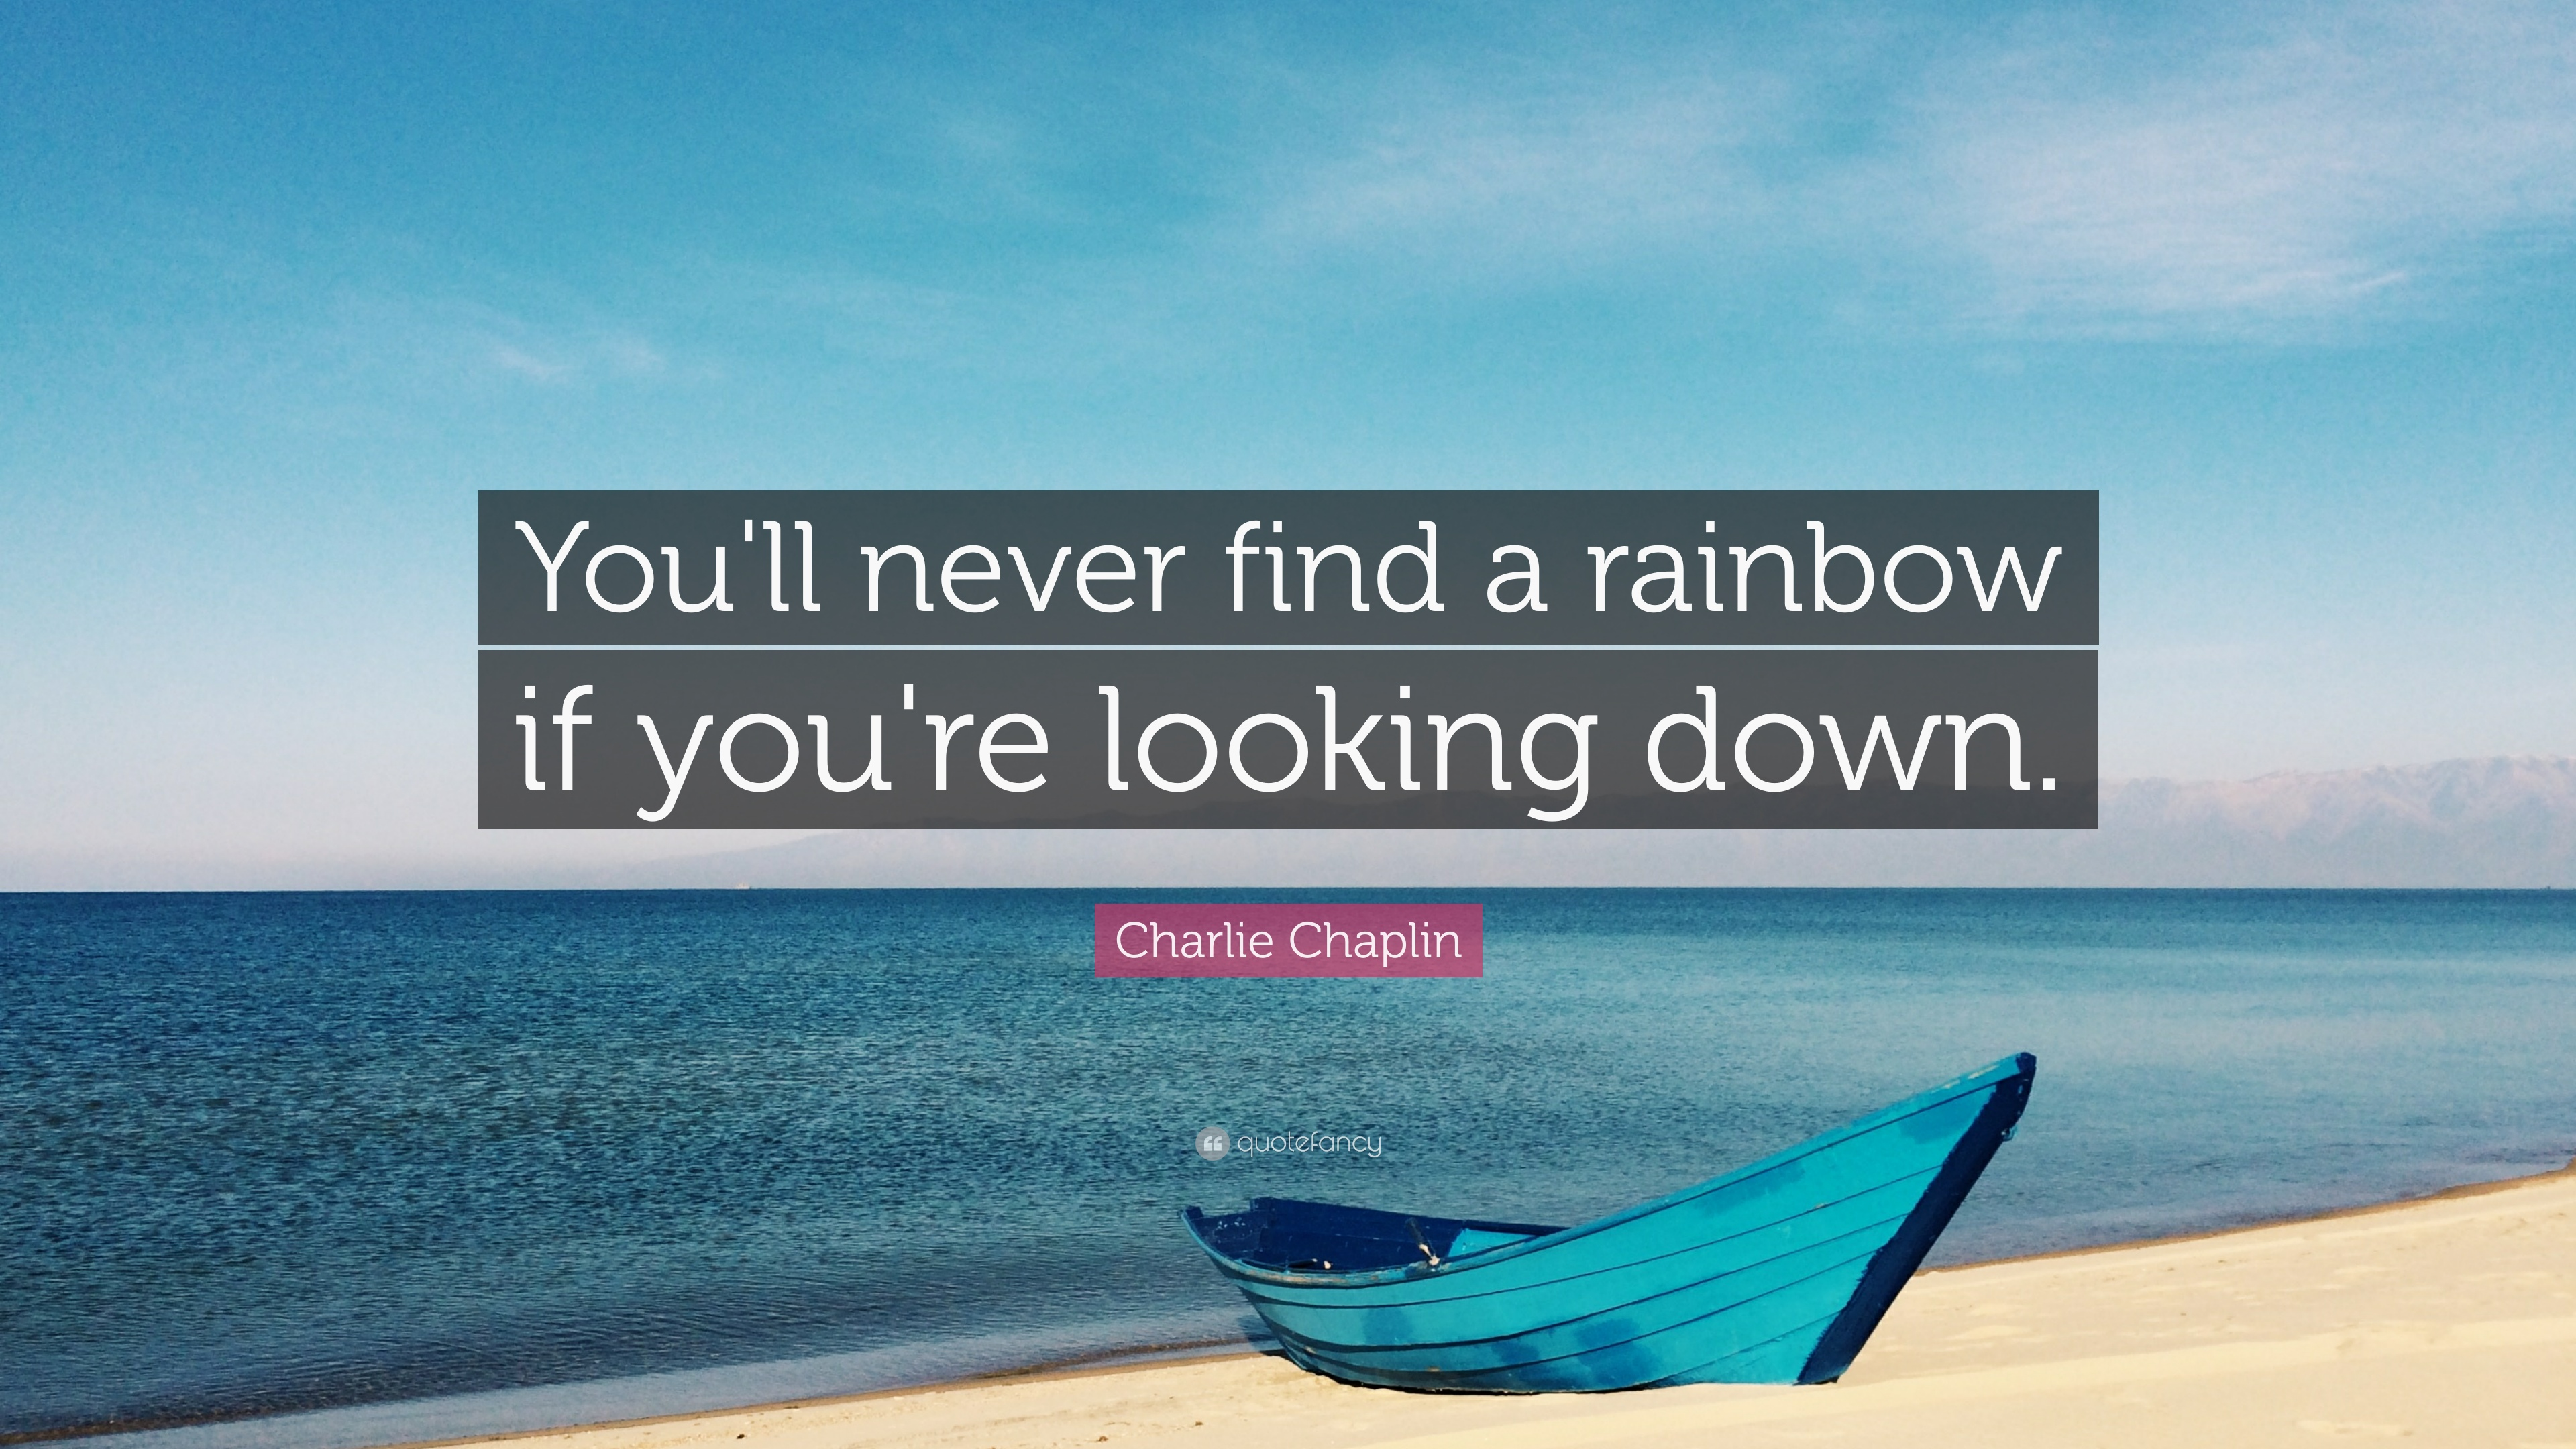 Charlie chaplin quote you ll never find a rainbow if you re